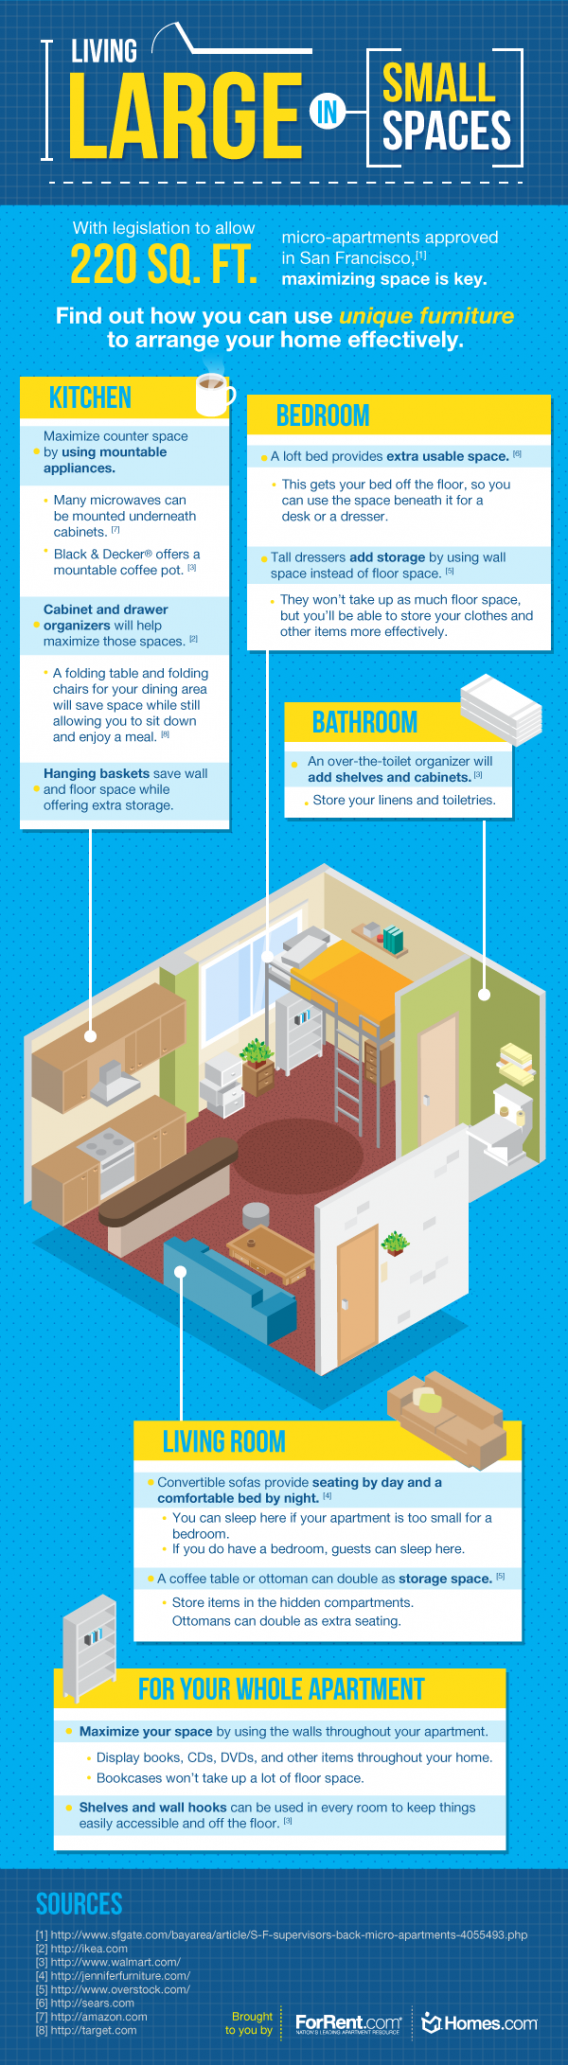 Living Large in Small Spaces Tips | ForRent